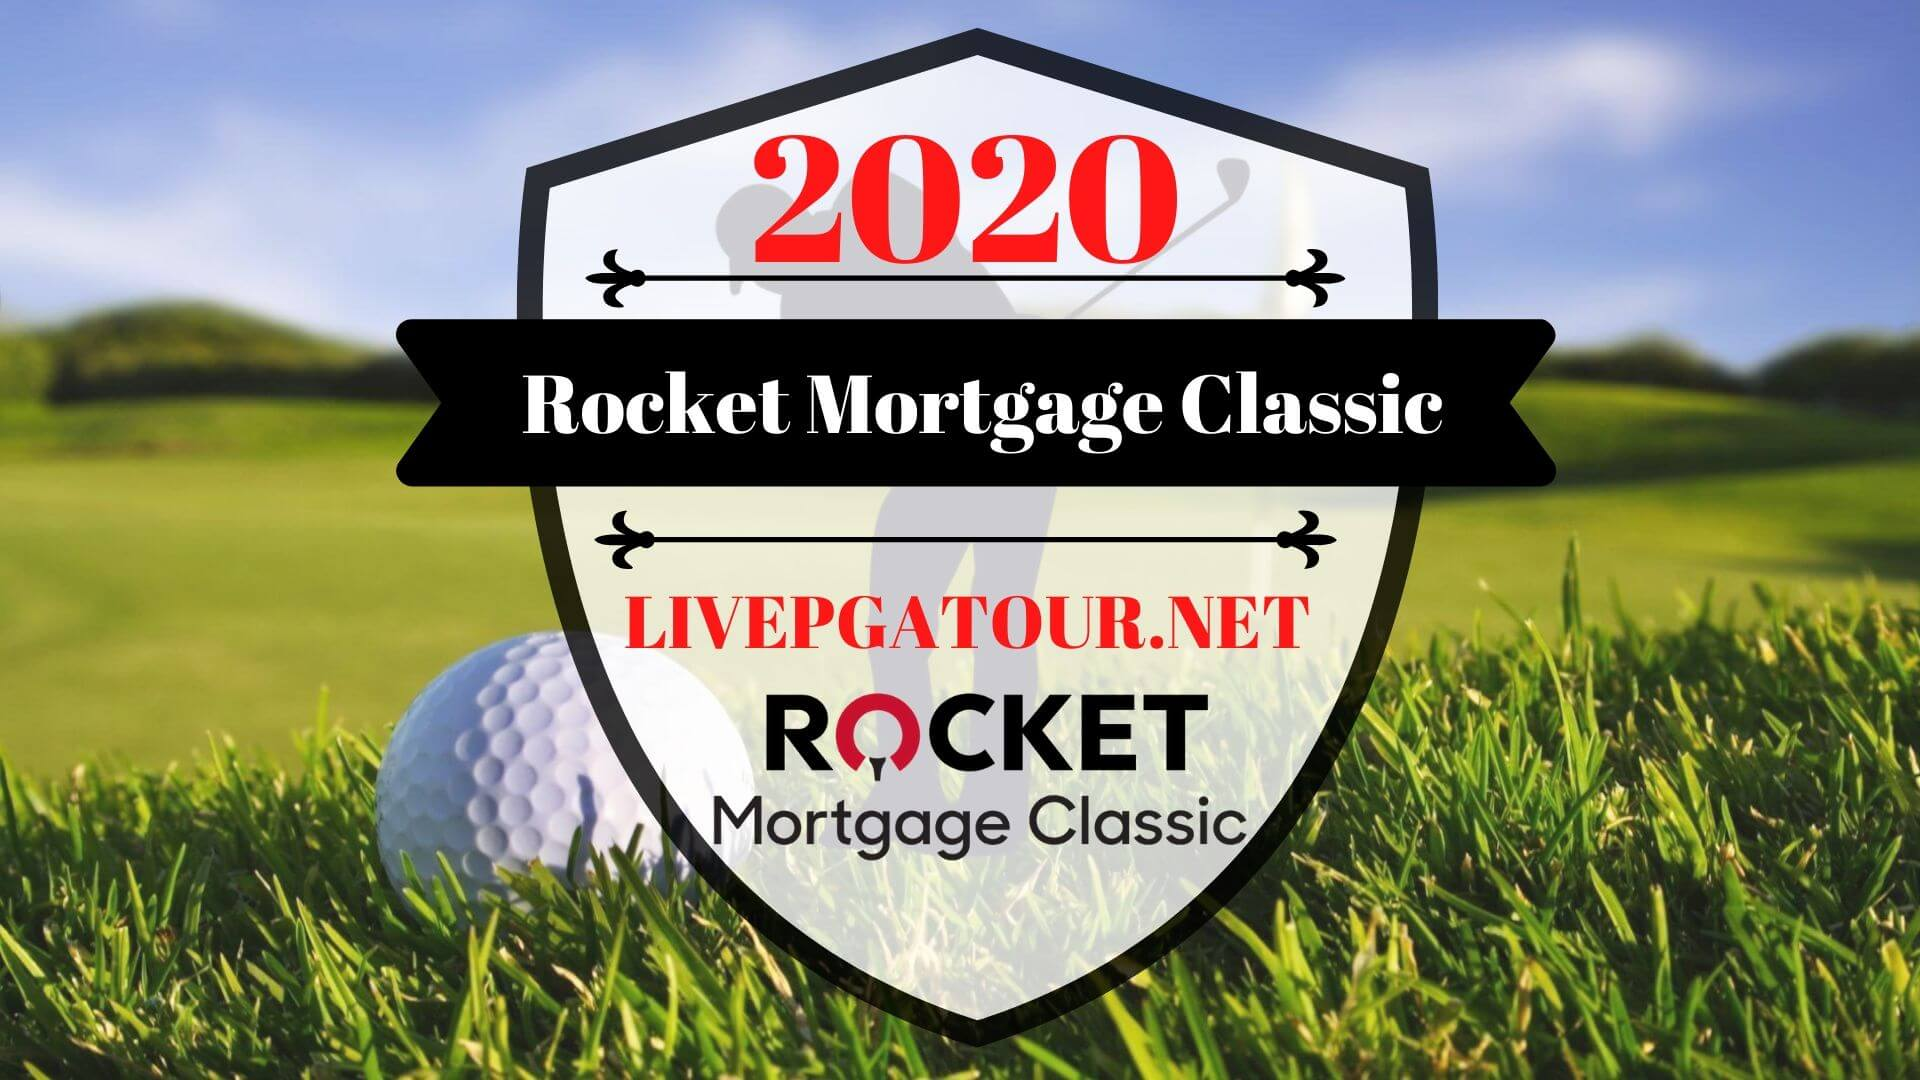 Rocket Mortgage Classic Live Stream 2020 | Day 2